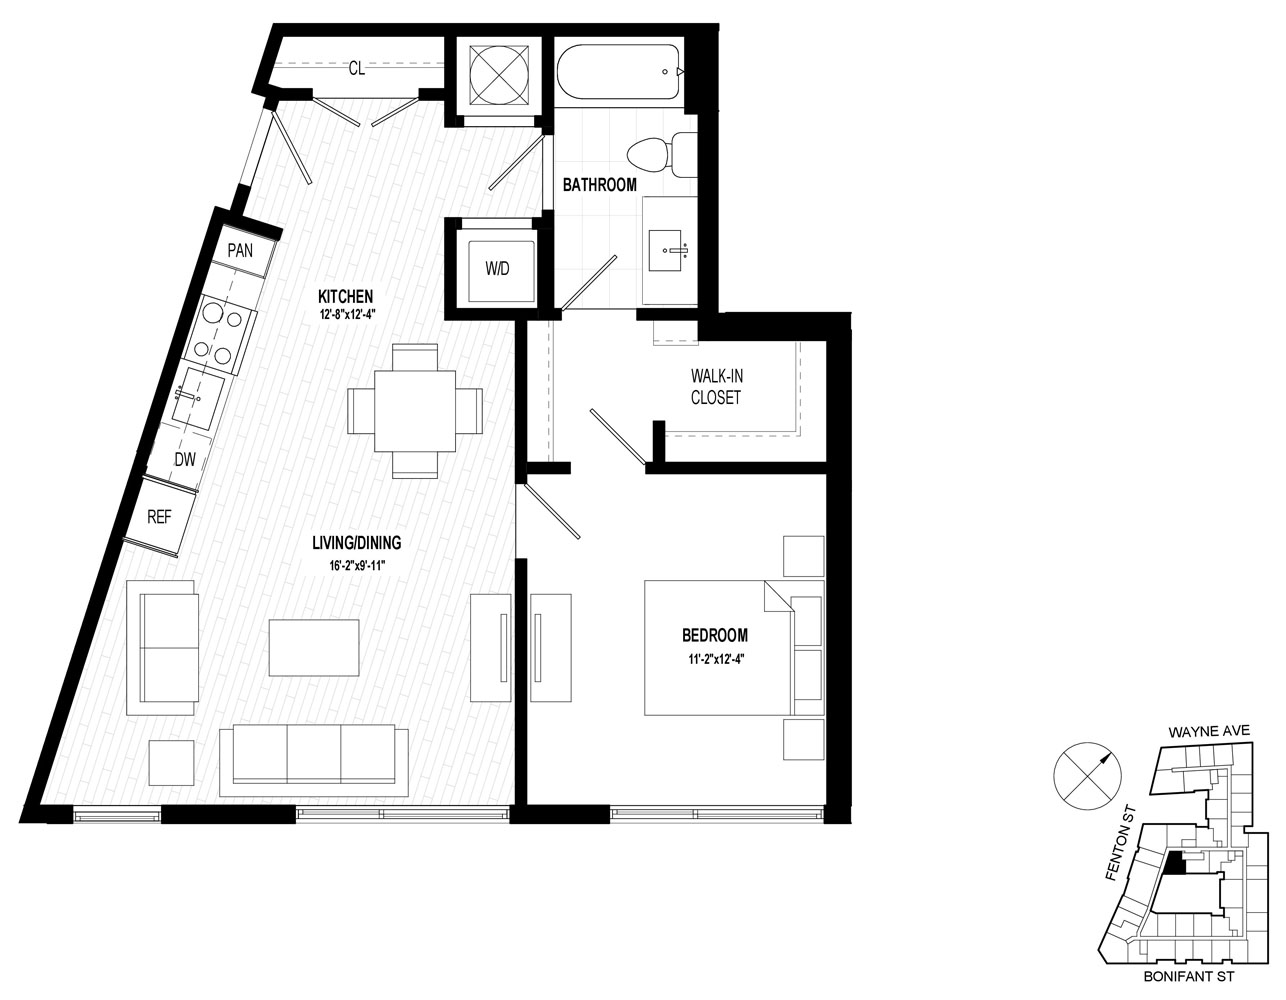 P0578887 761aa20 central a13 699 2 floorplan